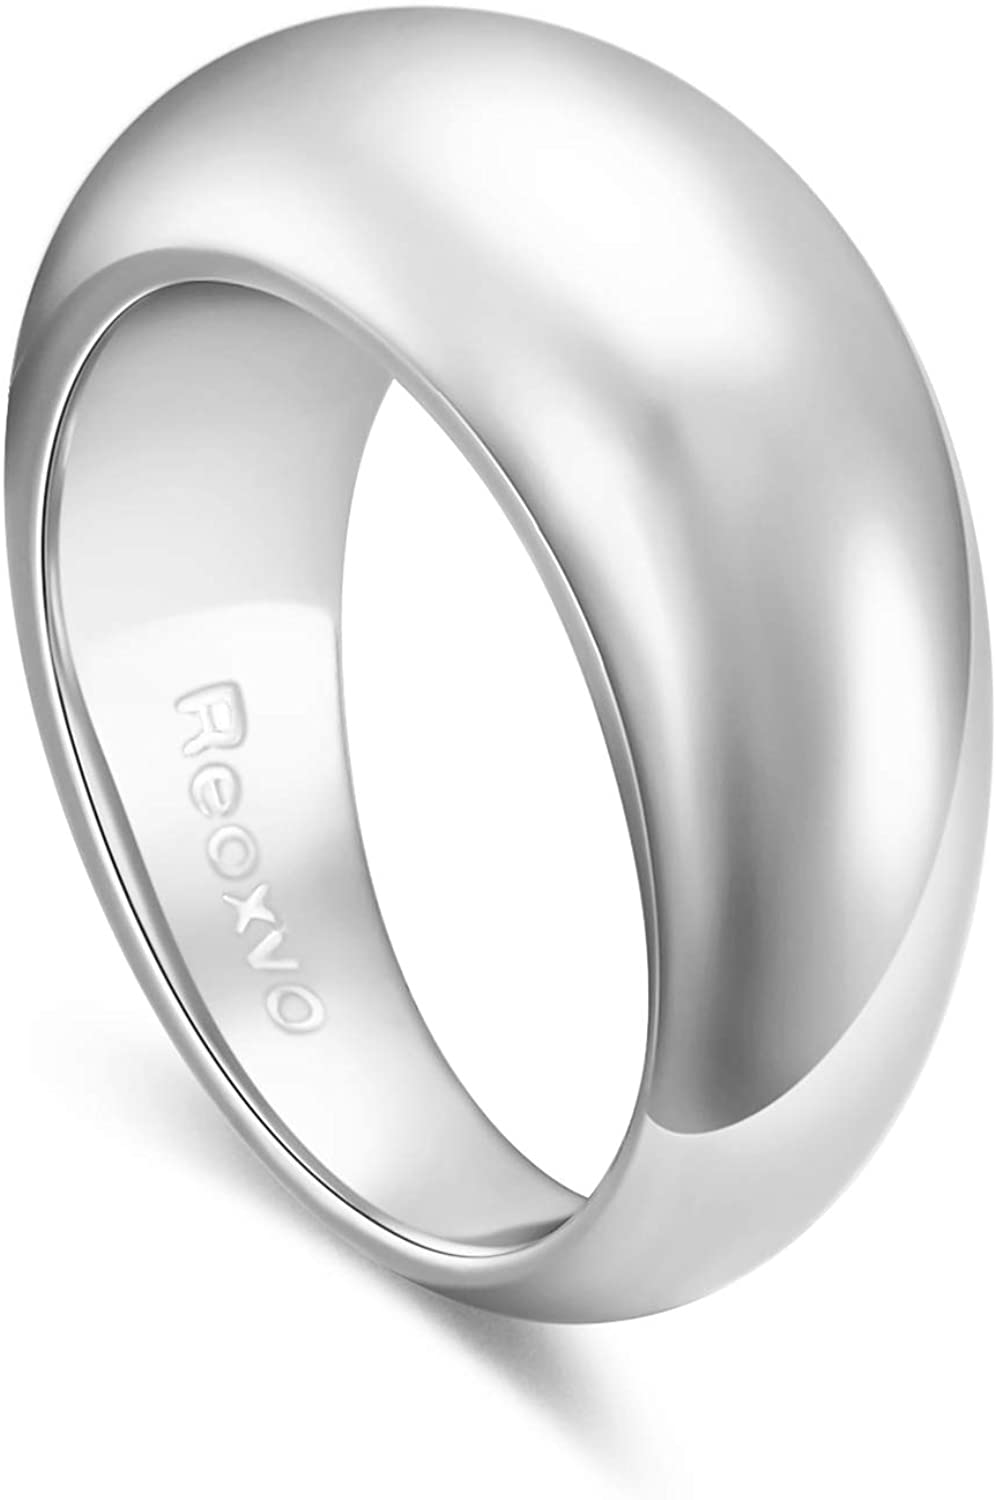 Reoxvo 18K Gold Plated Thick Chunky Dome Rings for Women Girls (5-10 Size)